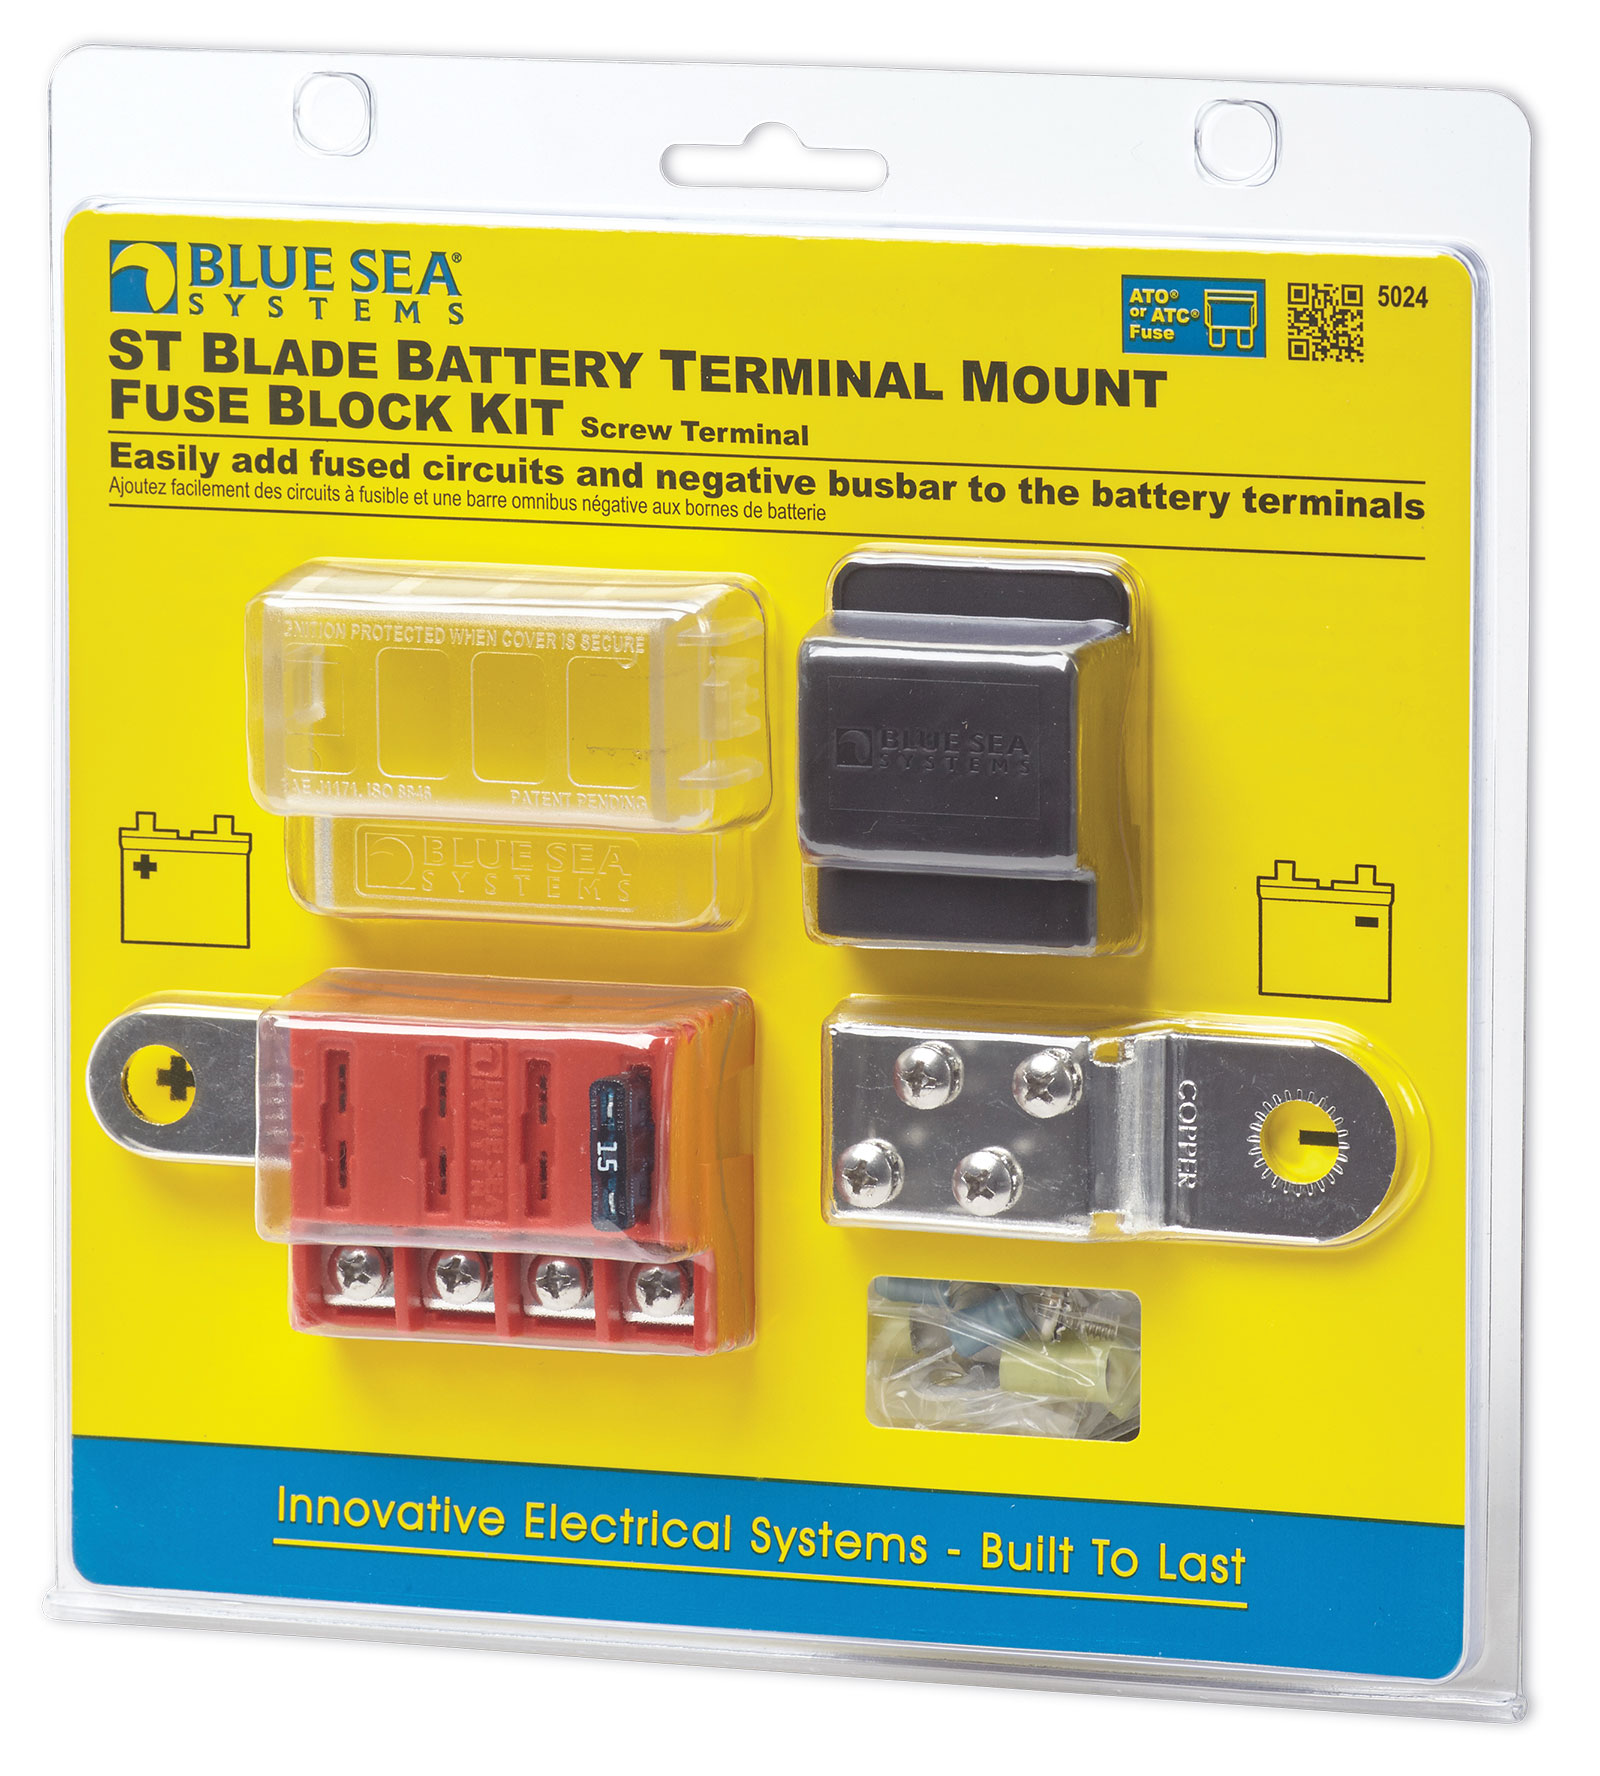 St Blade Battery Terminal Mount Fuse Block Kit Blue Sea Systems Switch Wiring Diagram Product Image